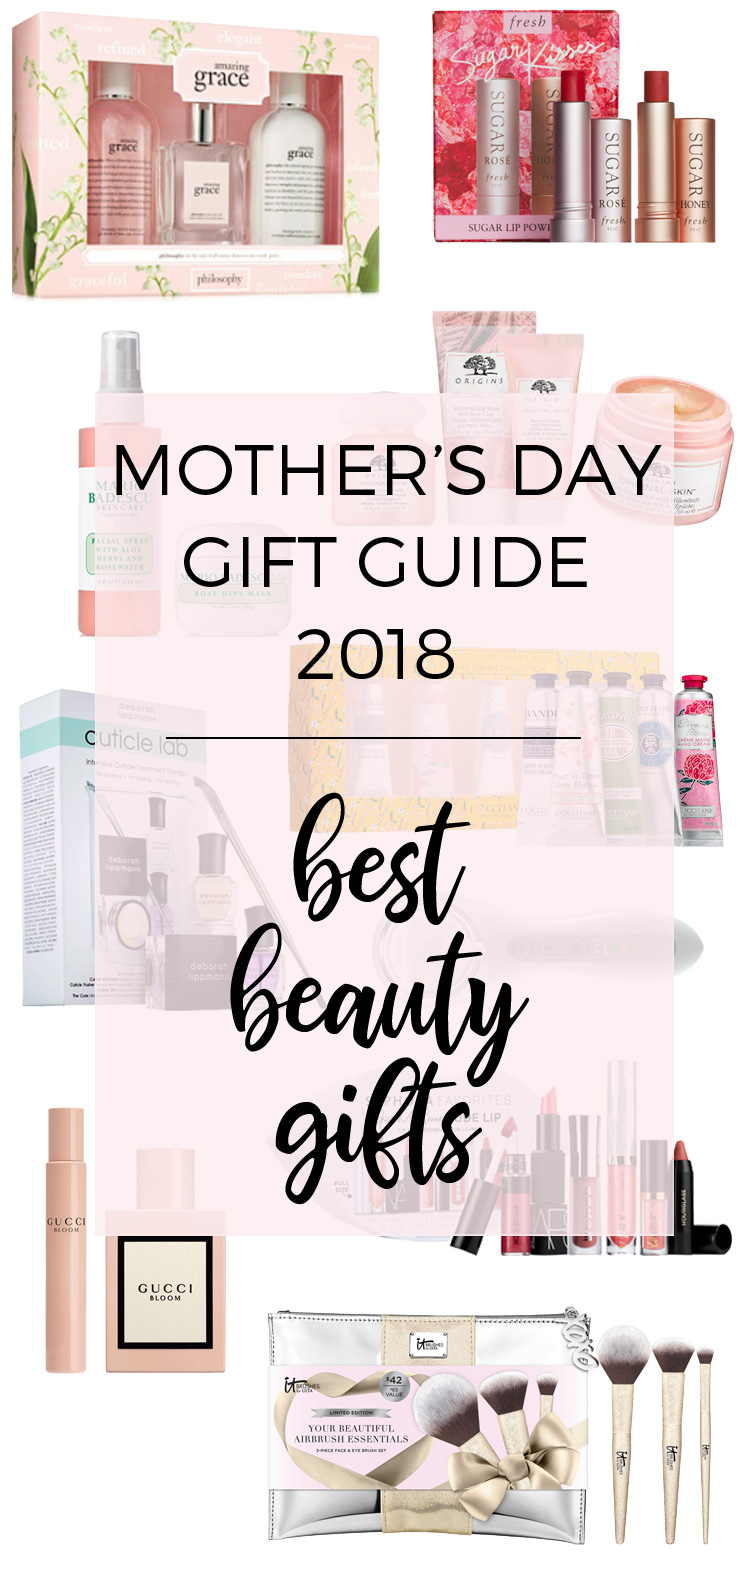 Mother's Day Gift Guide 2018: 10 Great Beauty Gifts.